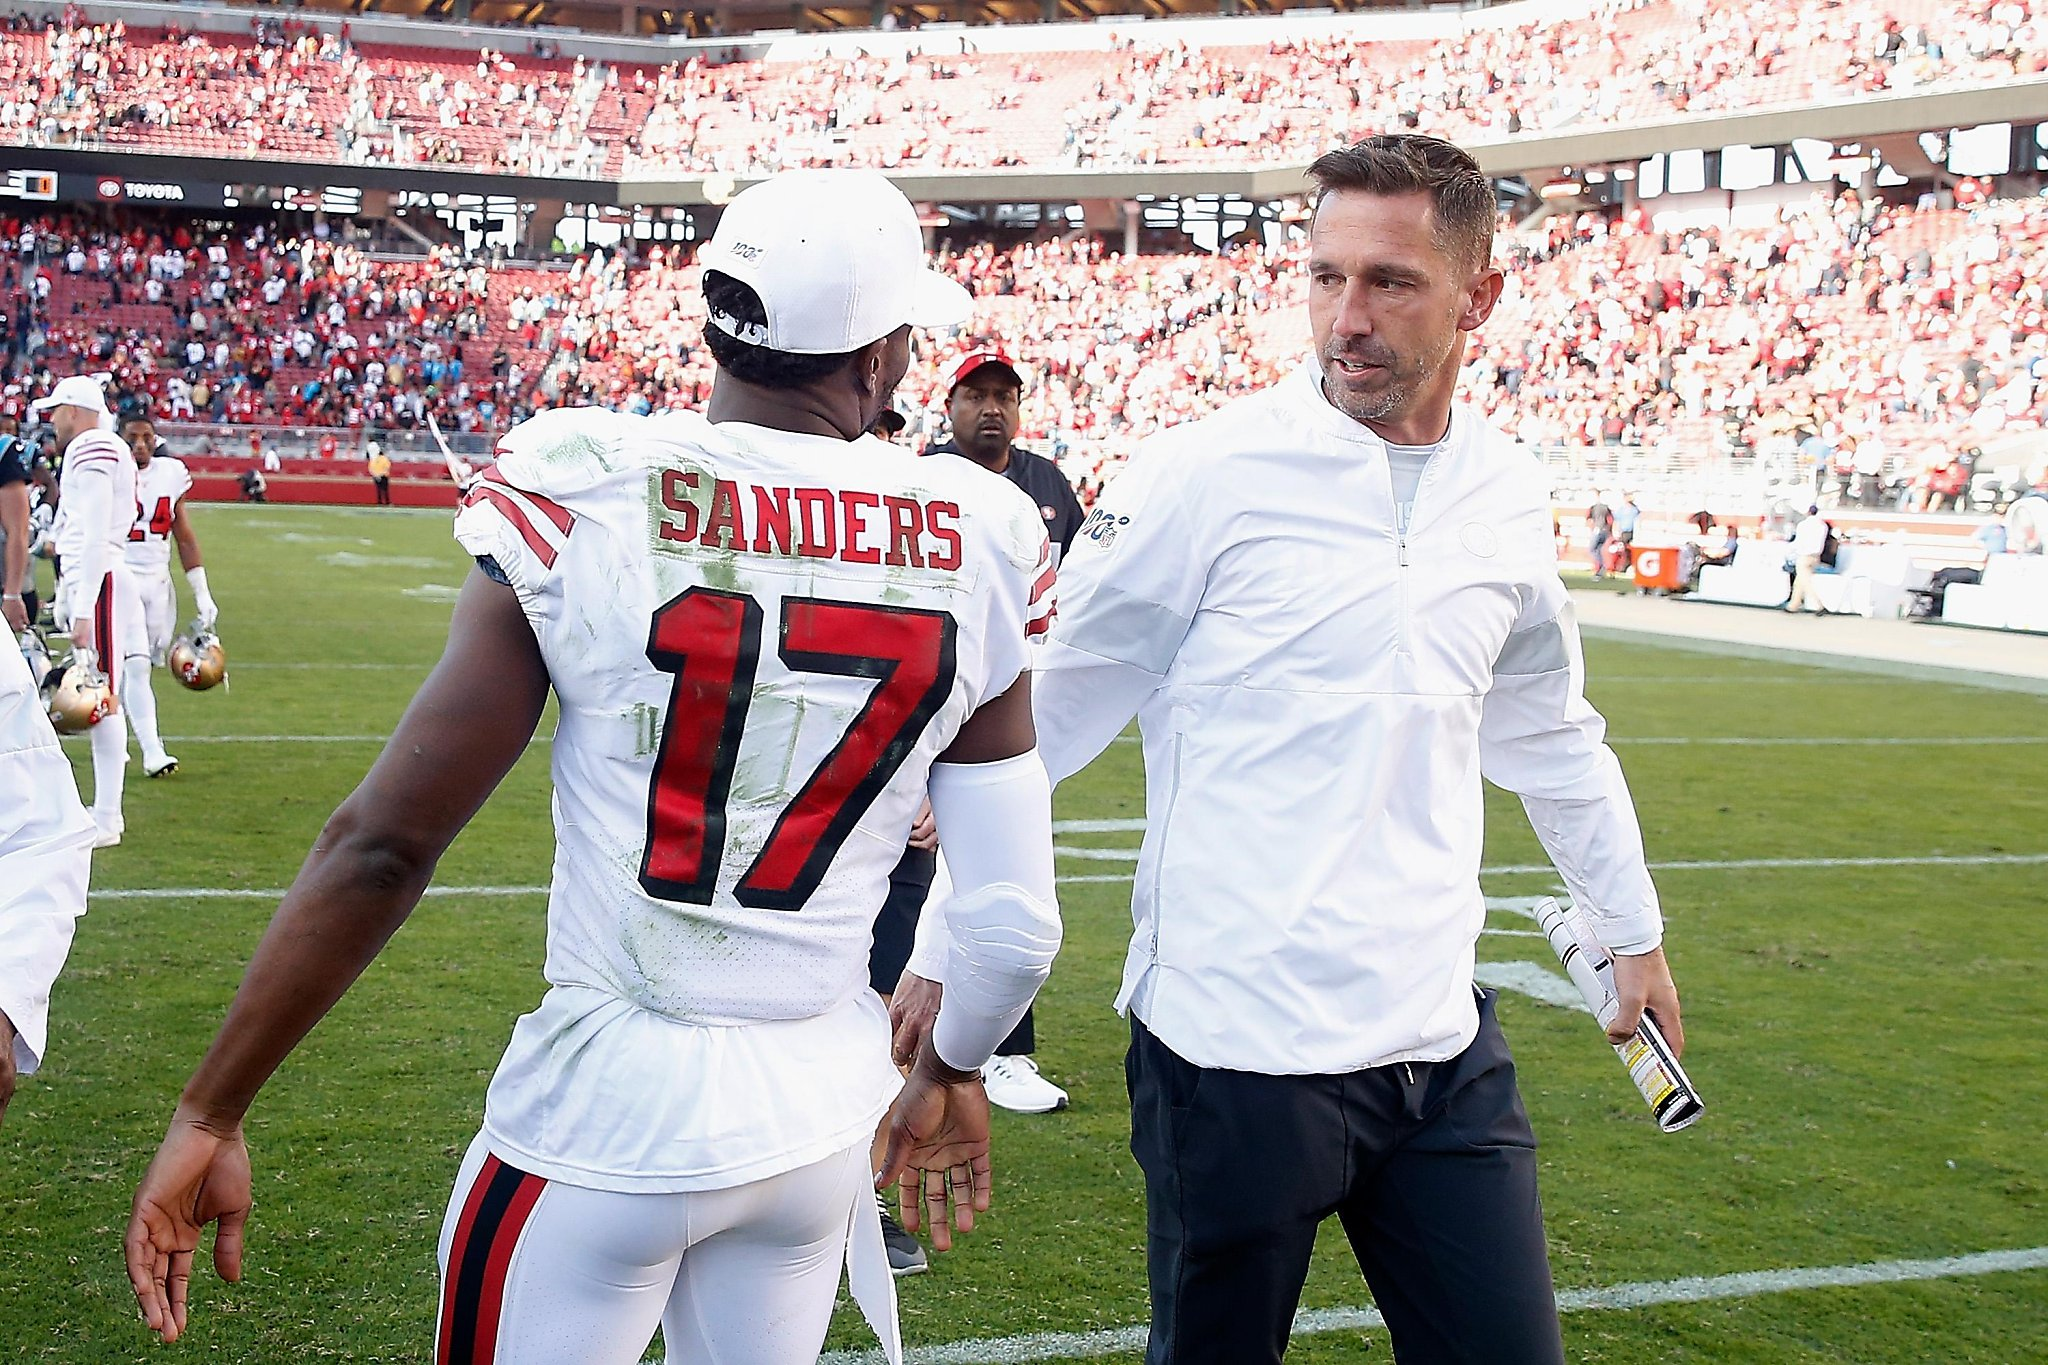 Kyle Shanahan wants Emmanuel Sanders to stay with 49ers, but doesn't know if it's possible